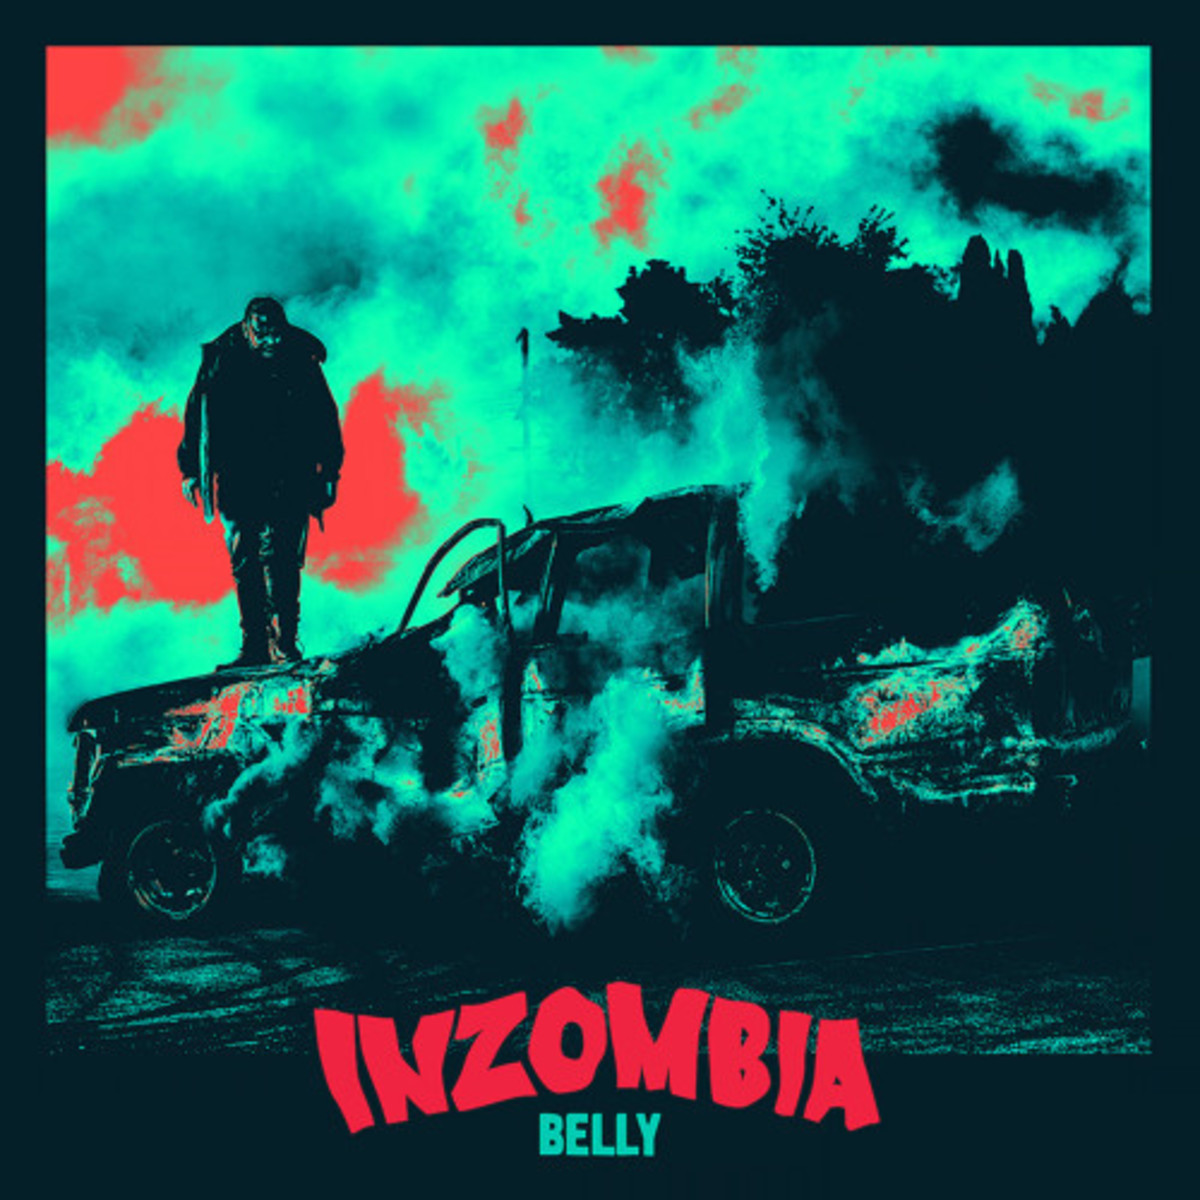 belly-inzombia.jpg